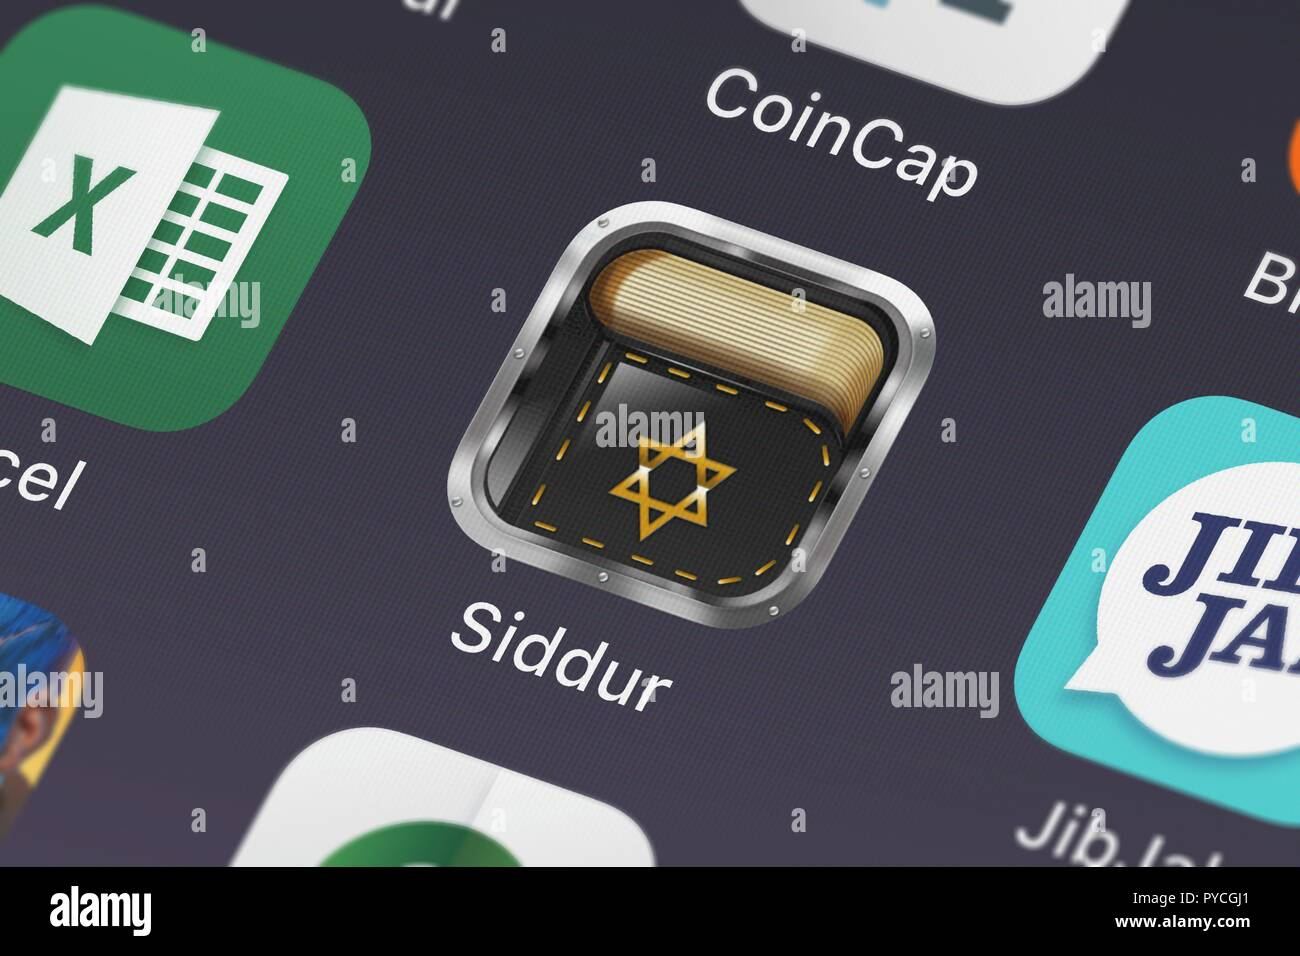 London, United Kingdom - October 26, 2018: Close-up shot of the Siddur - Special Edition סדור application icon from Pop-ok.com on an iPhone. - Stock Image